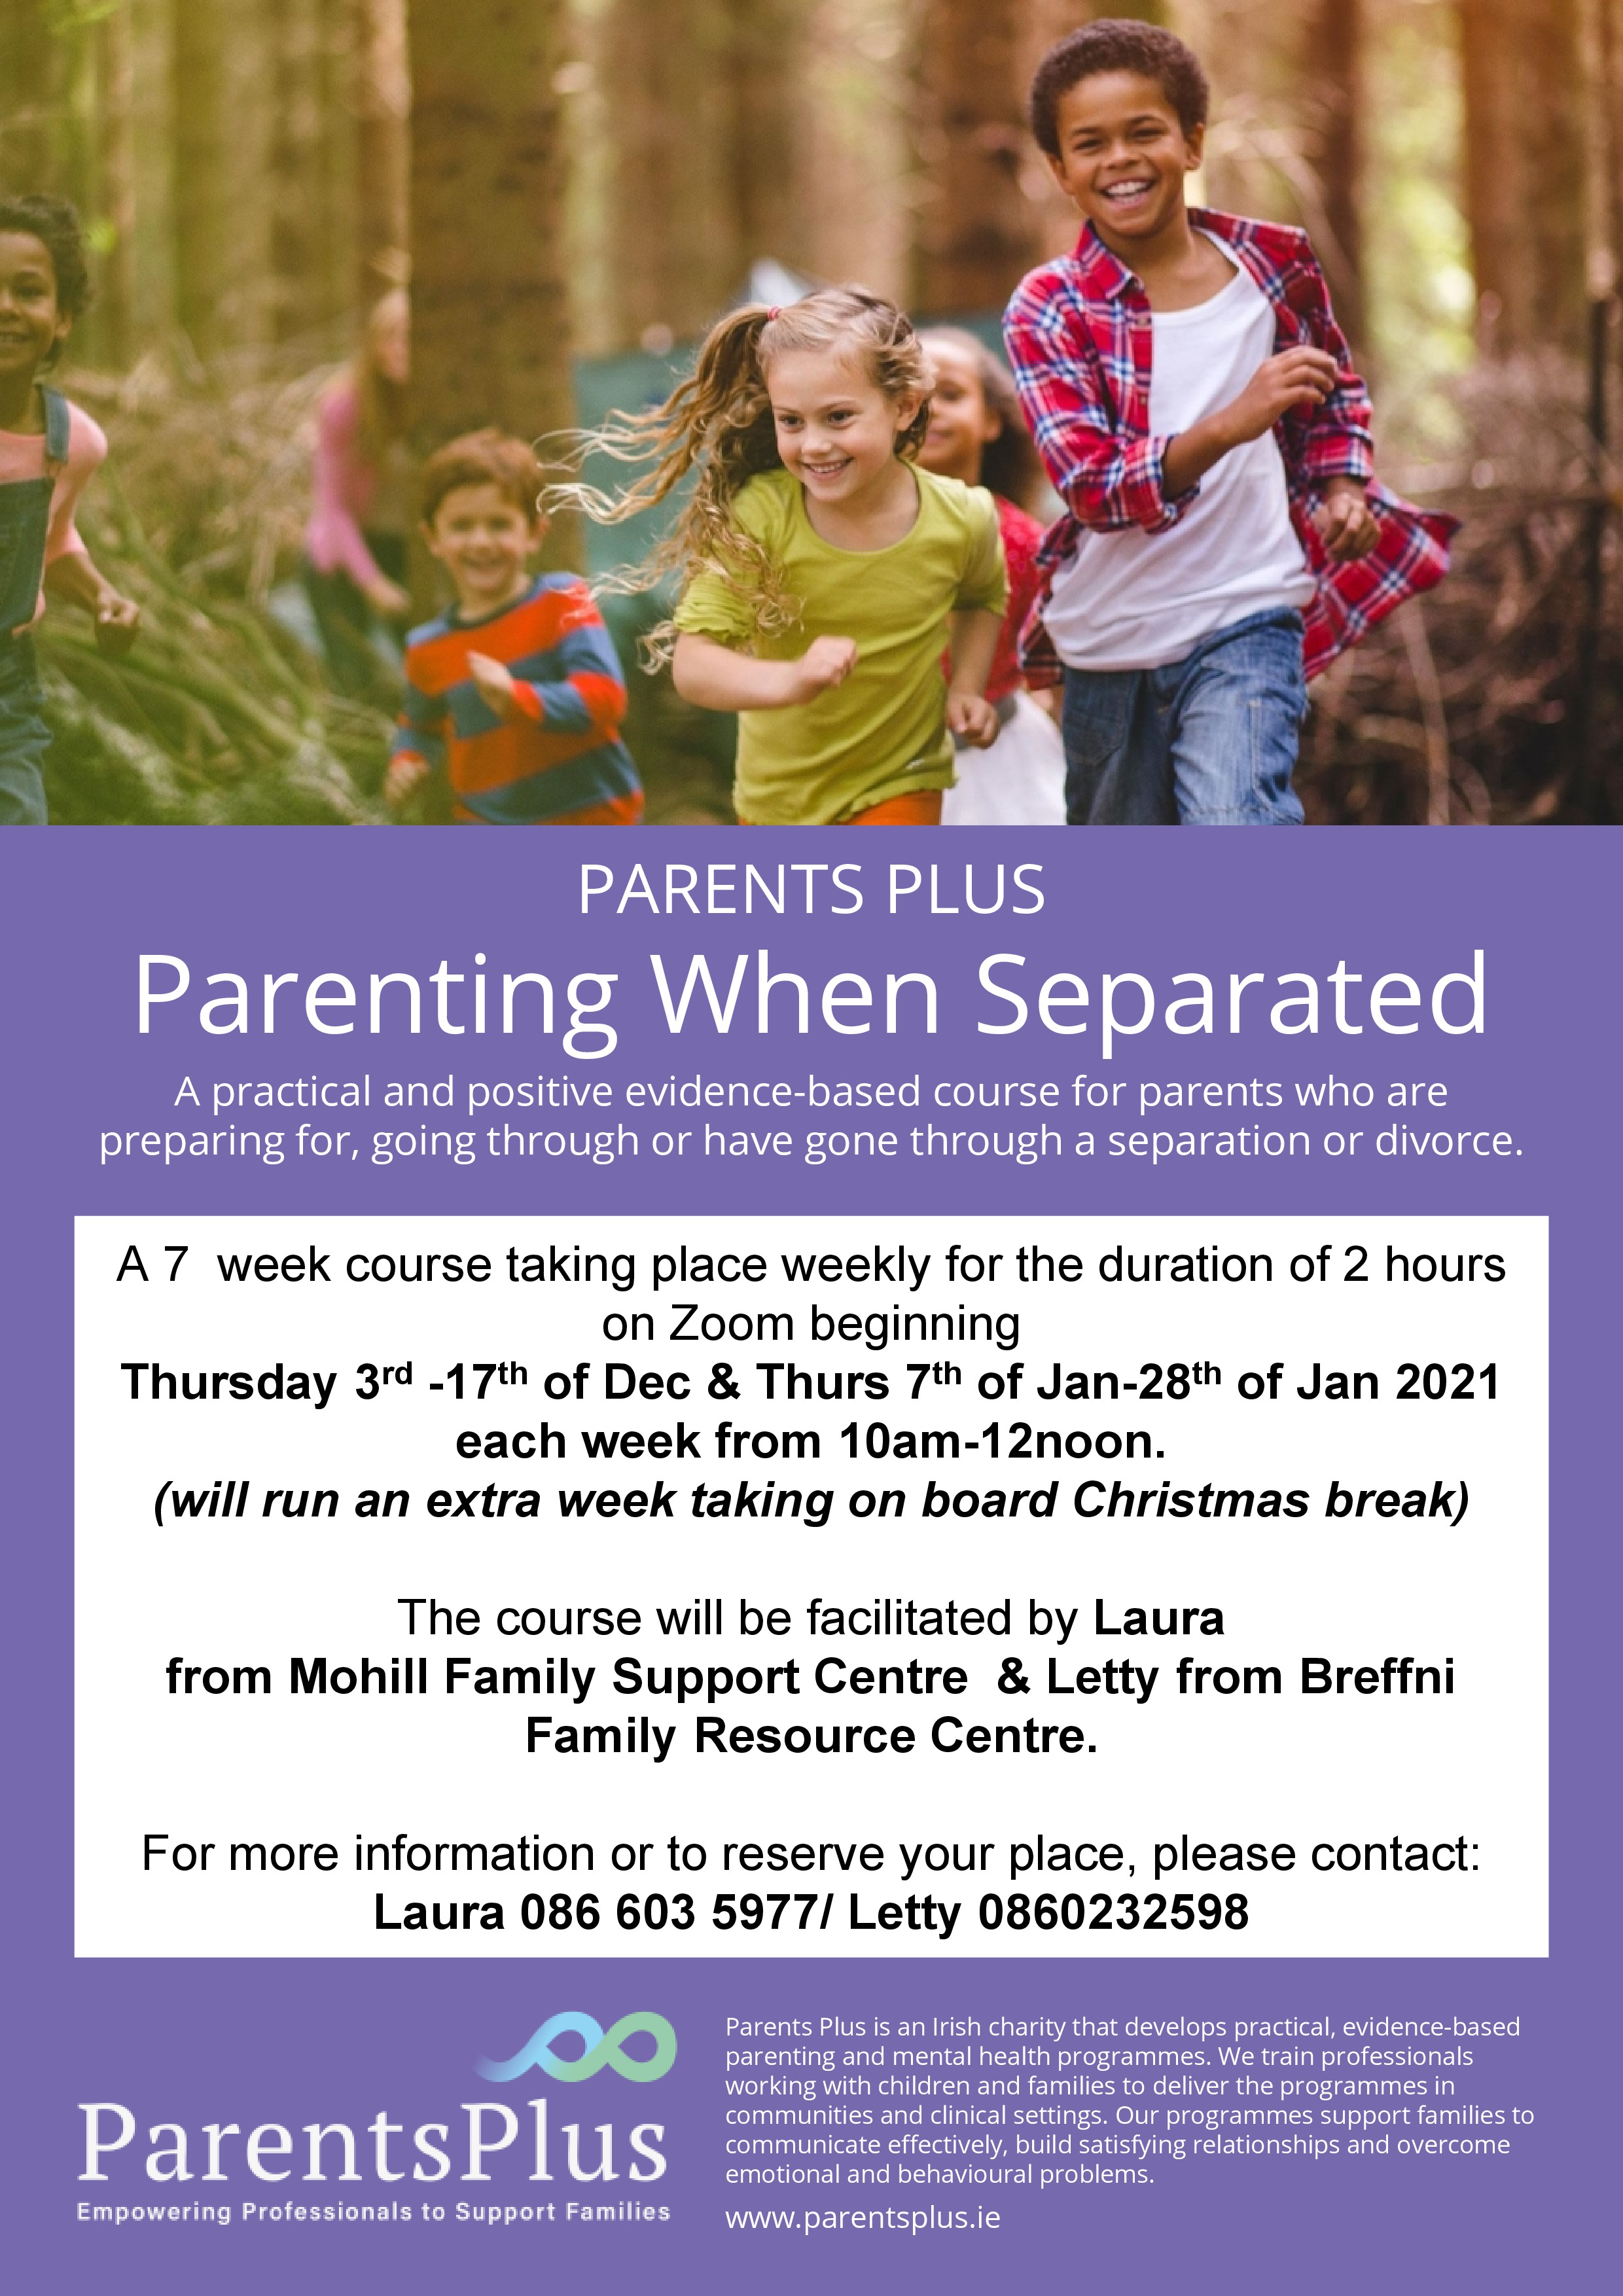 MyCarrick Event | Breffni Family Resource Centre : Parenting When Separated